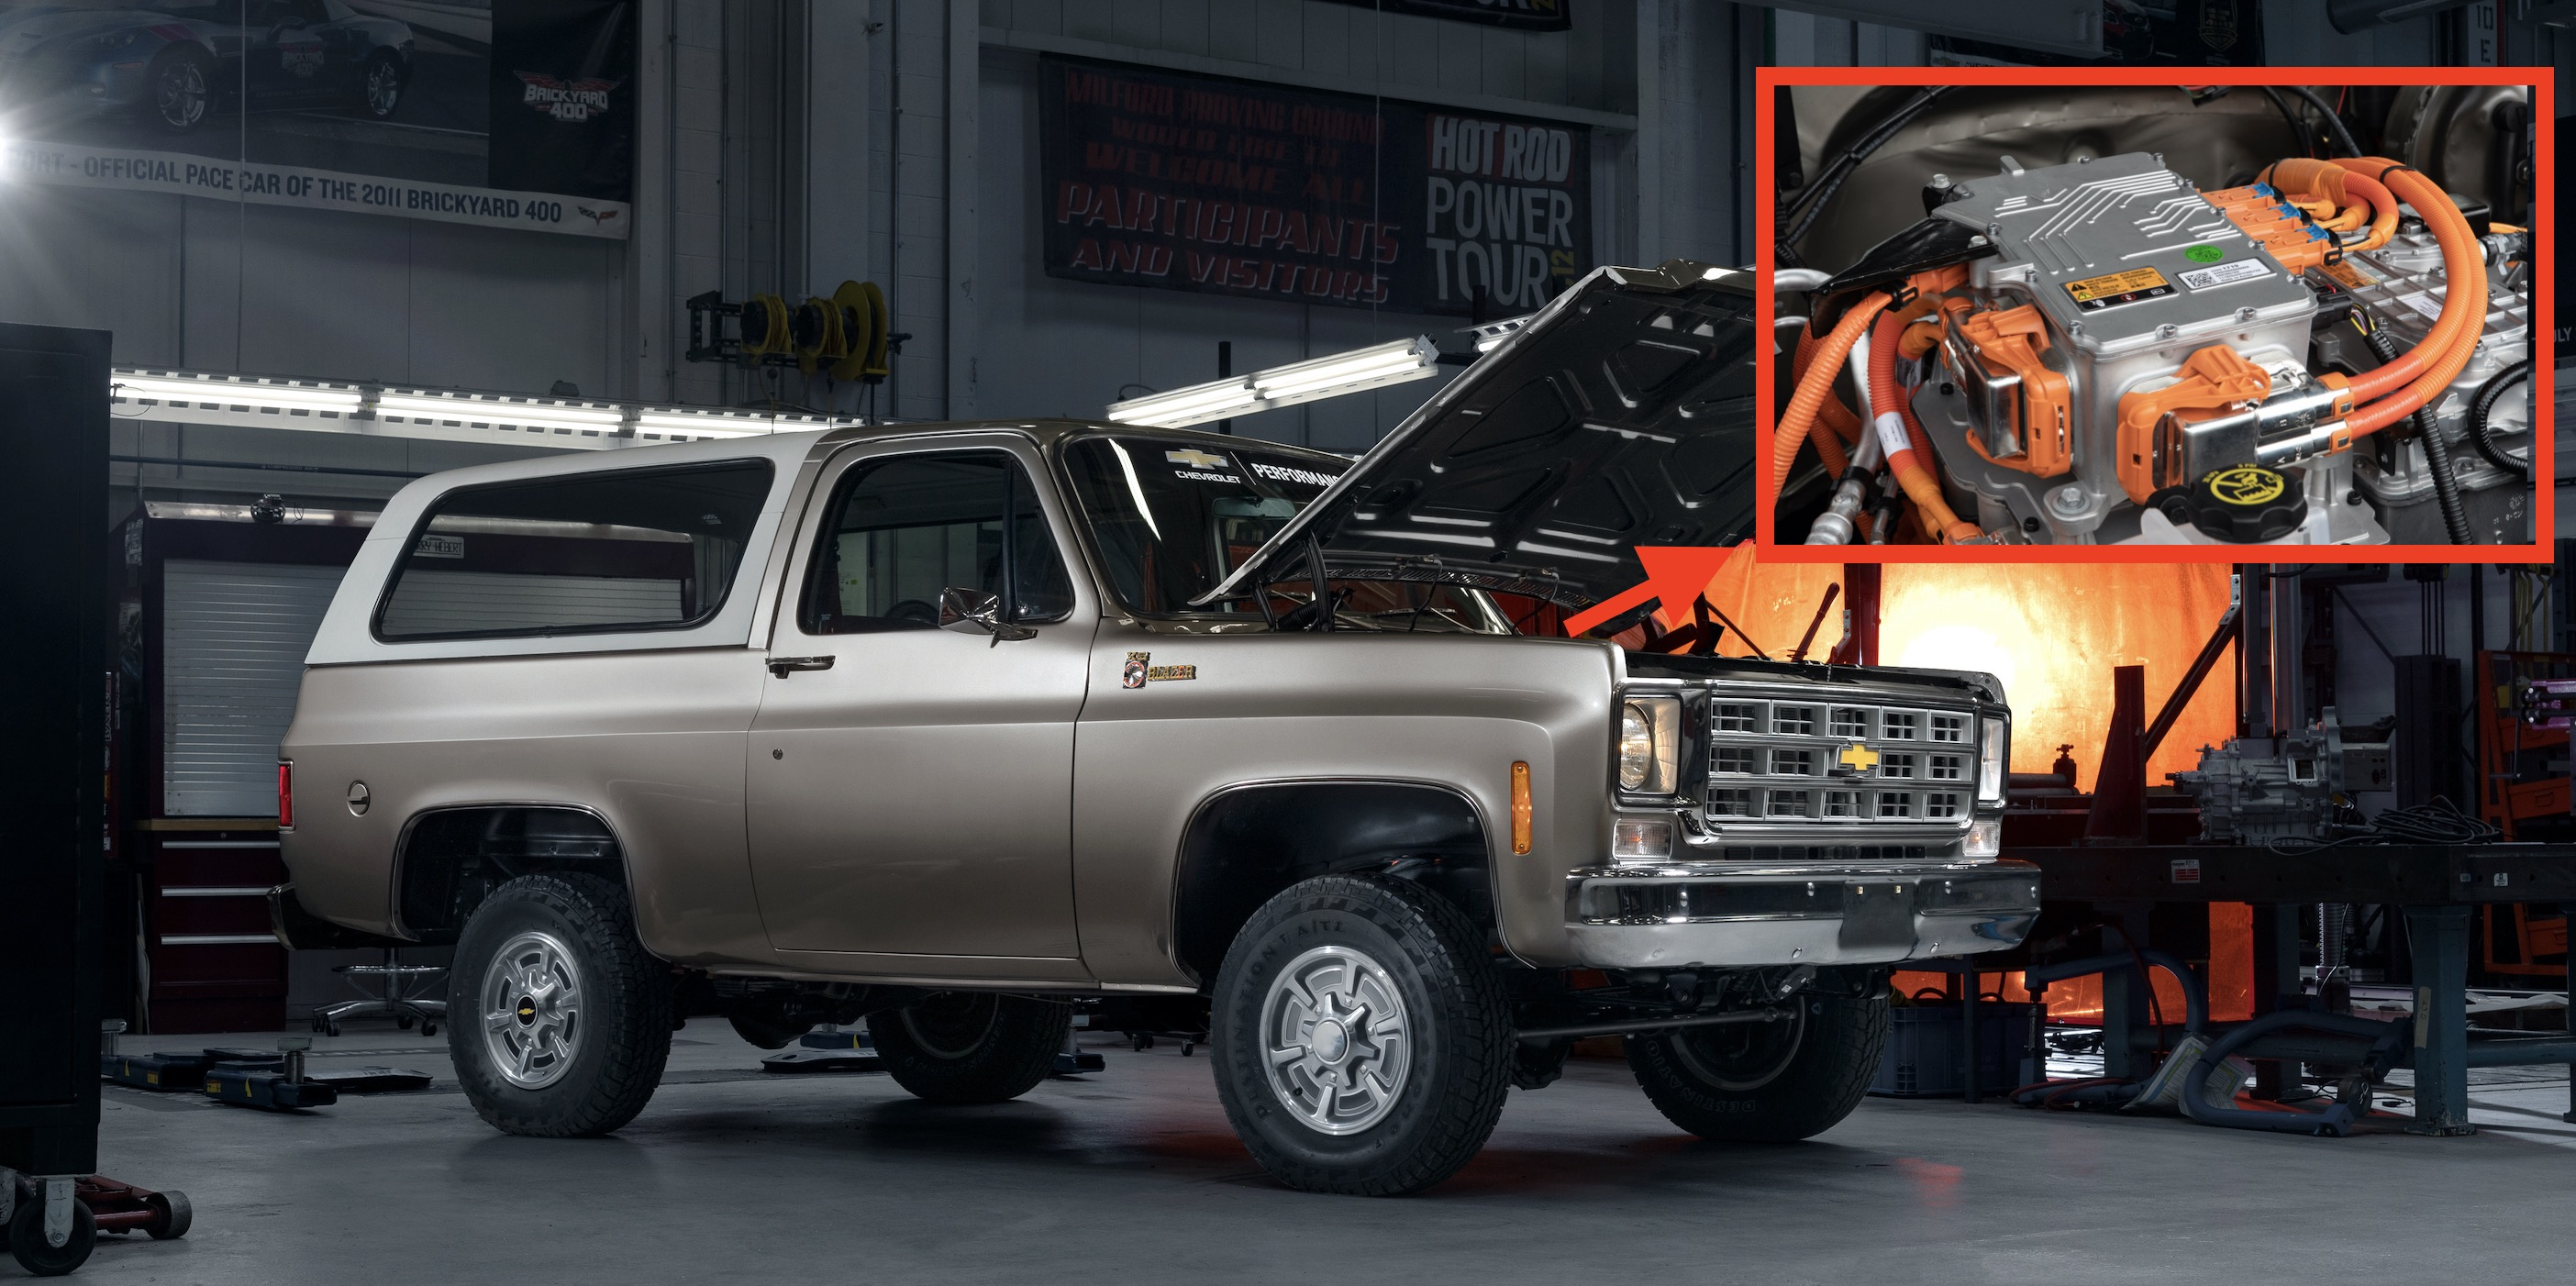 GM unveils 1977 K5 Blazer-E with electric power thanks to its upcoming eCrate conversion kit - Electrek